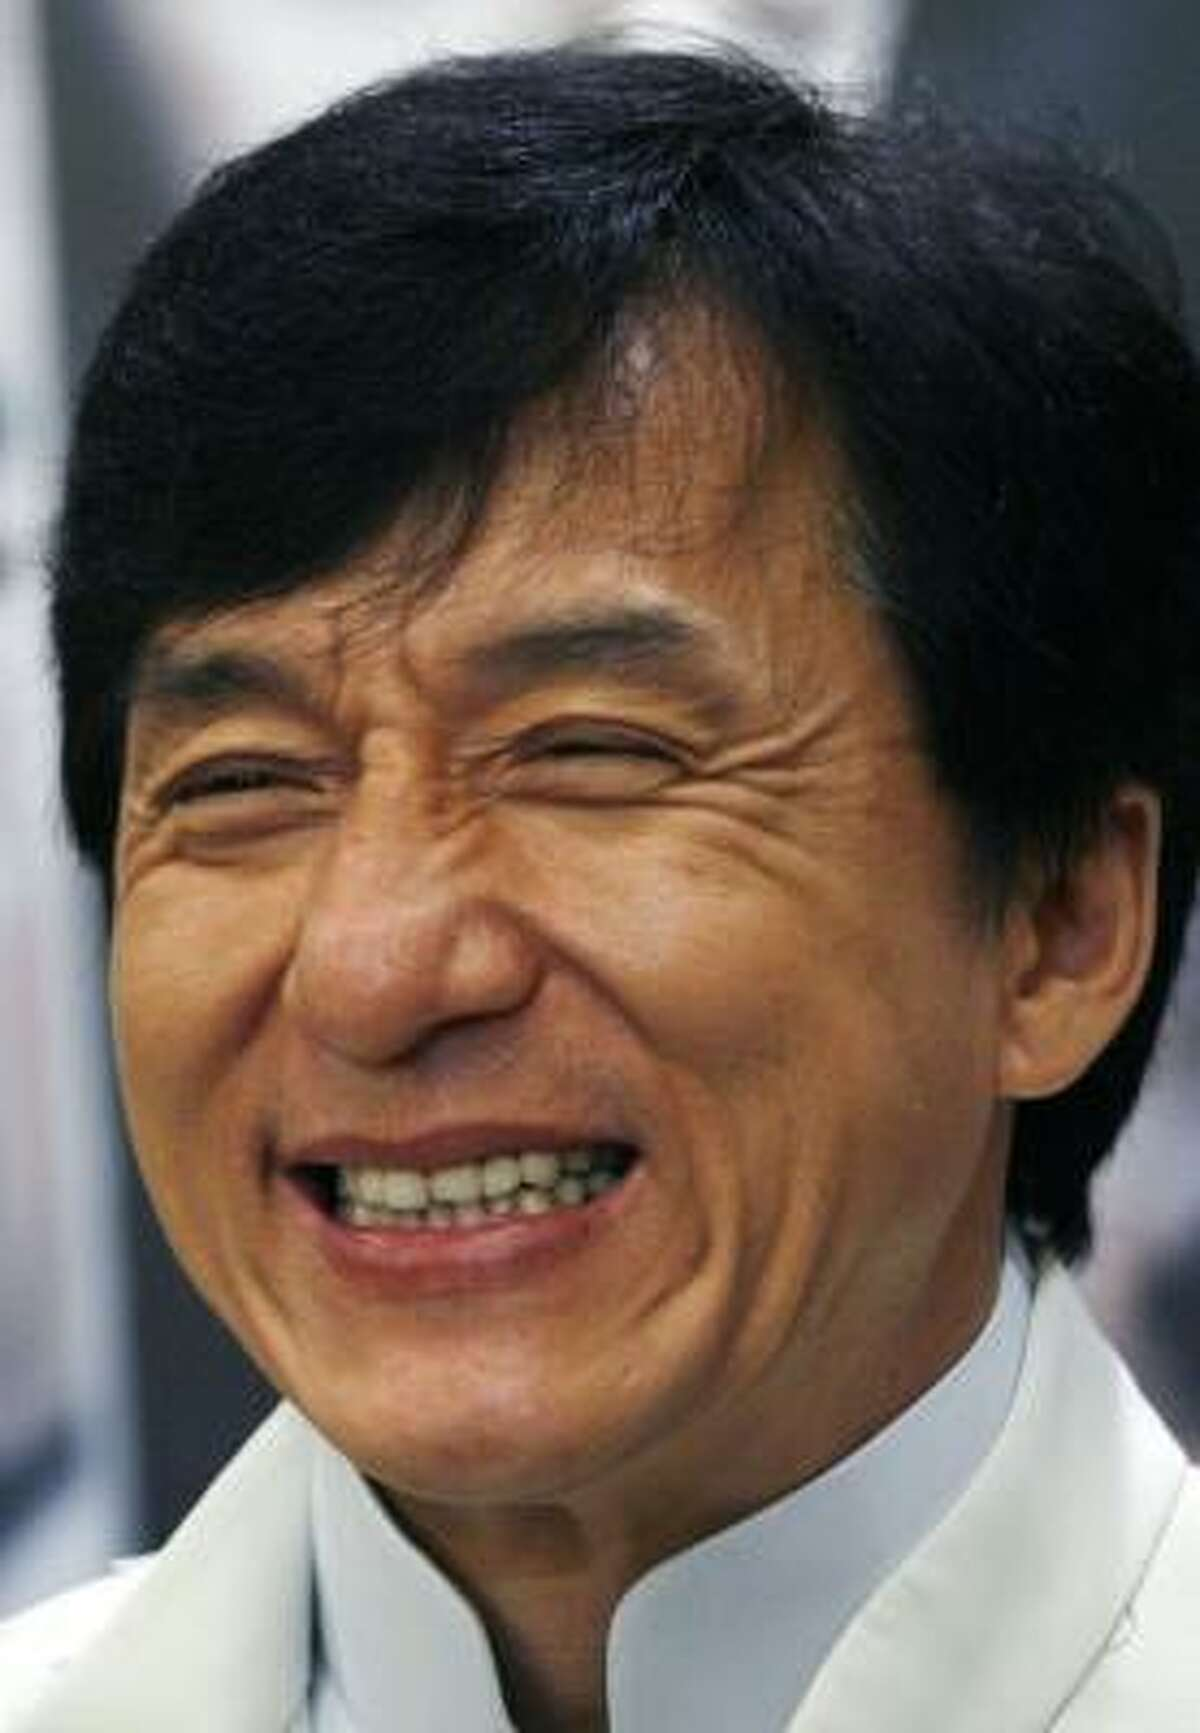 And Jackie Chan will play Mr. Miyagi to Jaden Smith's Daniel in a Hollywood-Chinese remake of the 1984 hit.